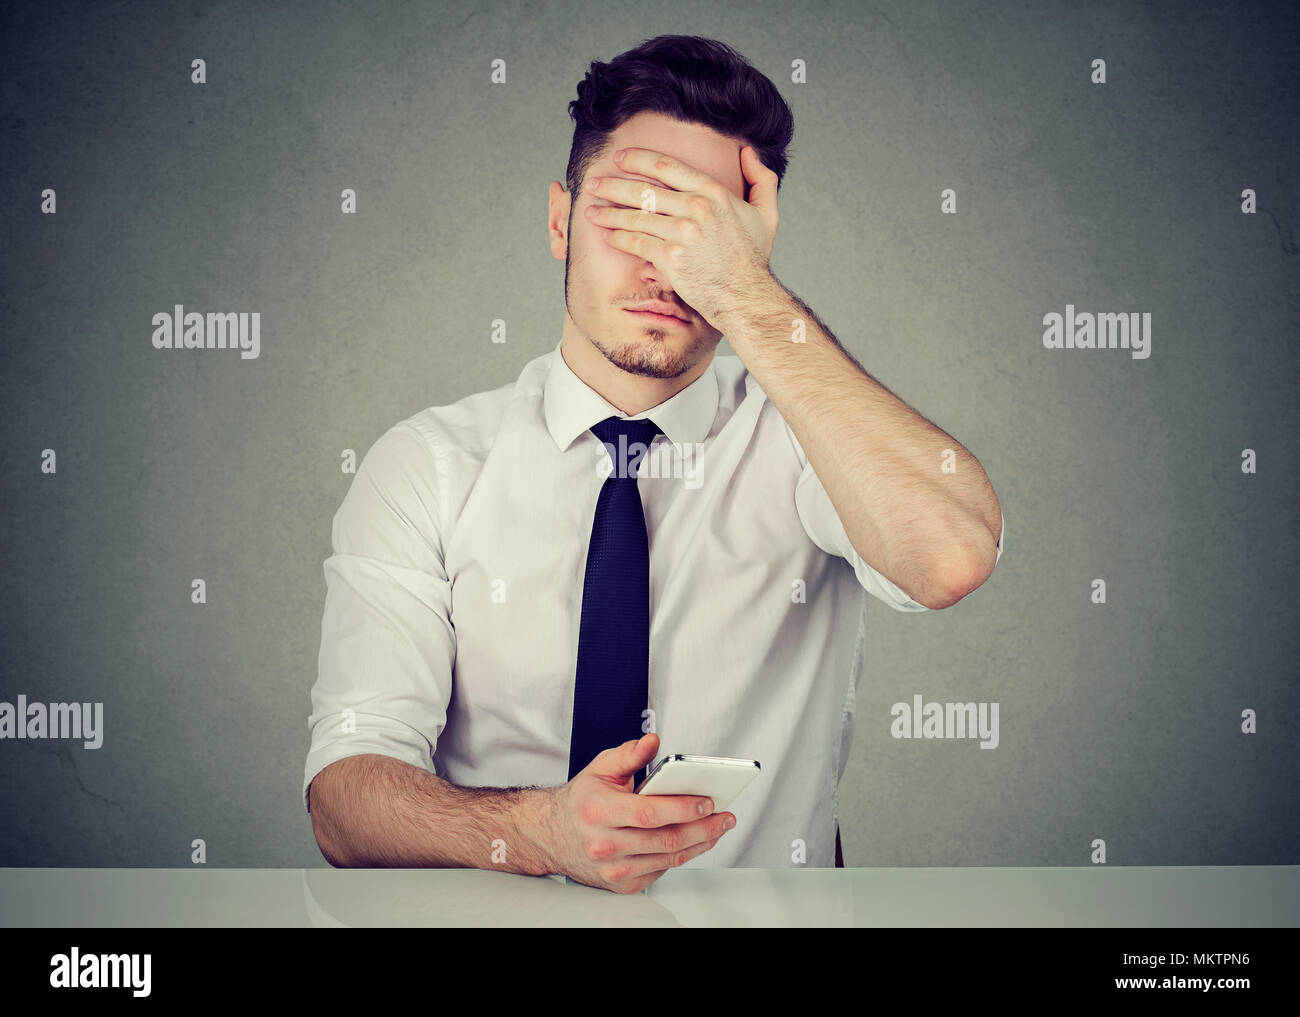 Young formal man using phone and covering face because of doing mistake while working - Stock Image